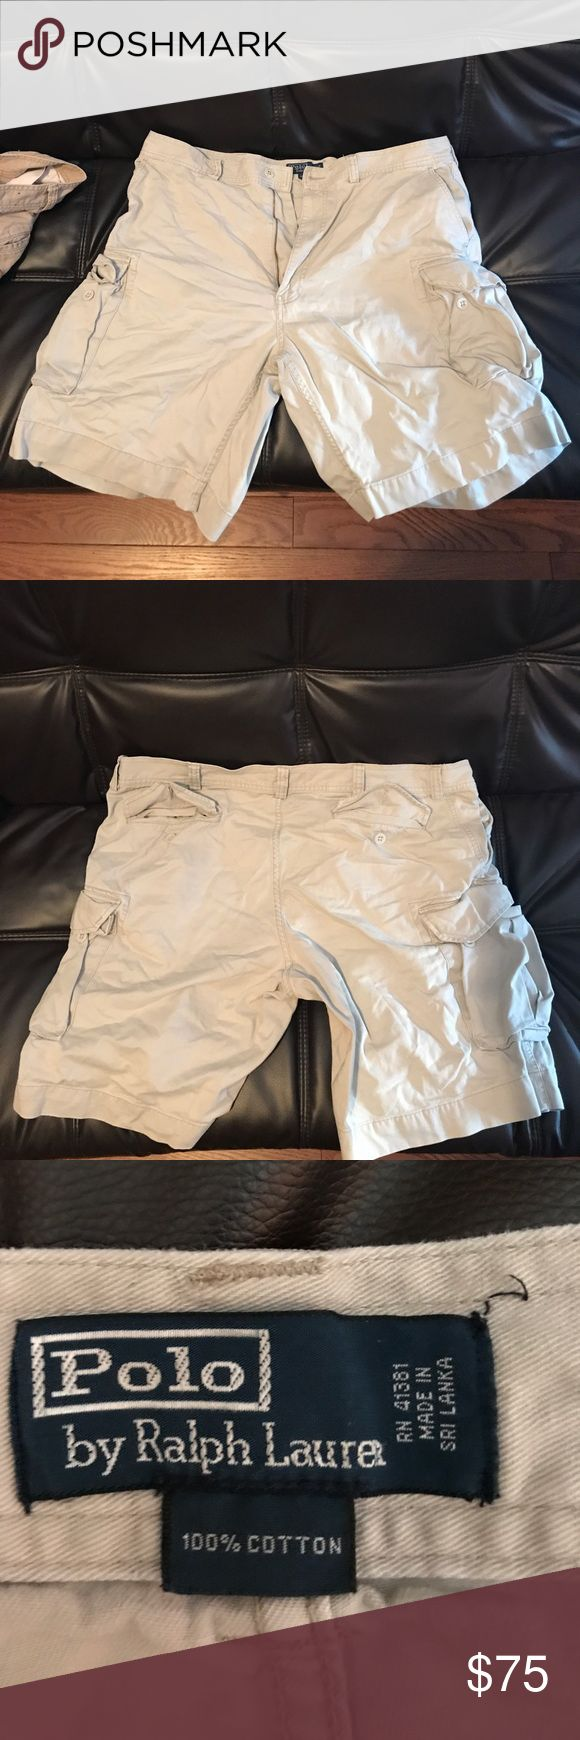 Polo Ralph Lauren cargo shorts size 40 EUC Gently worn, no rips holes or stains Polo by Ralph Lauren Shorts Cargo